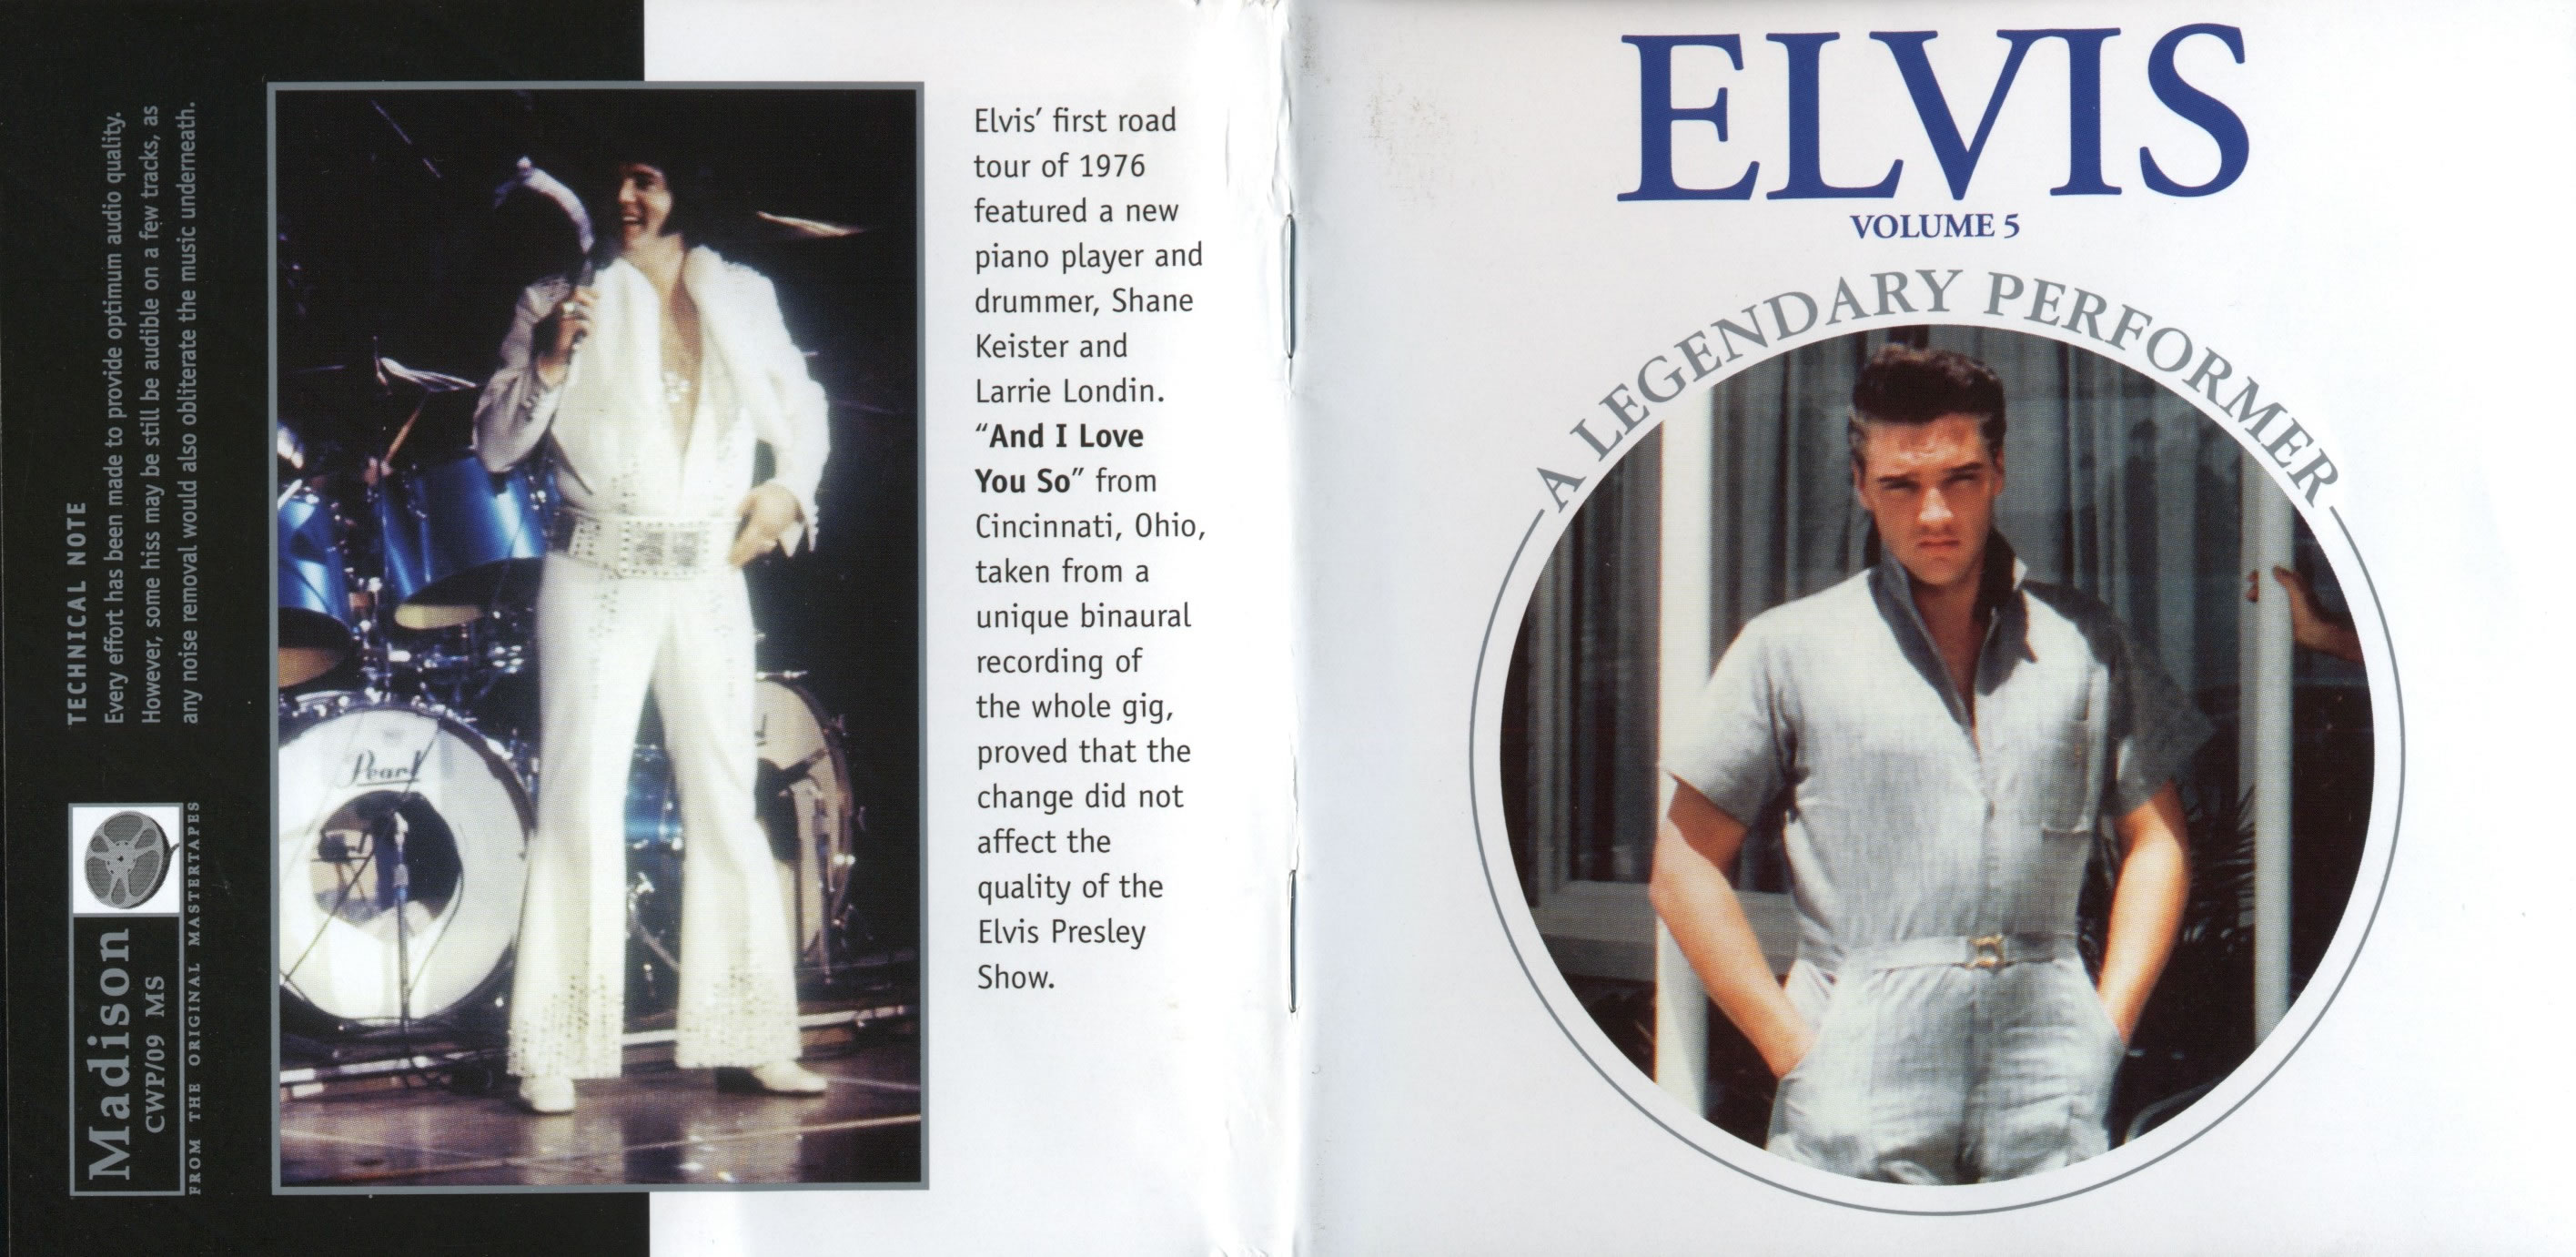 elvis as a catalyst for change See photos and articles about elvis presley - the way it was on he undoubtedly was a catalyst for what eventually the beatles and he didn't change and.